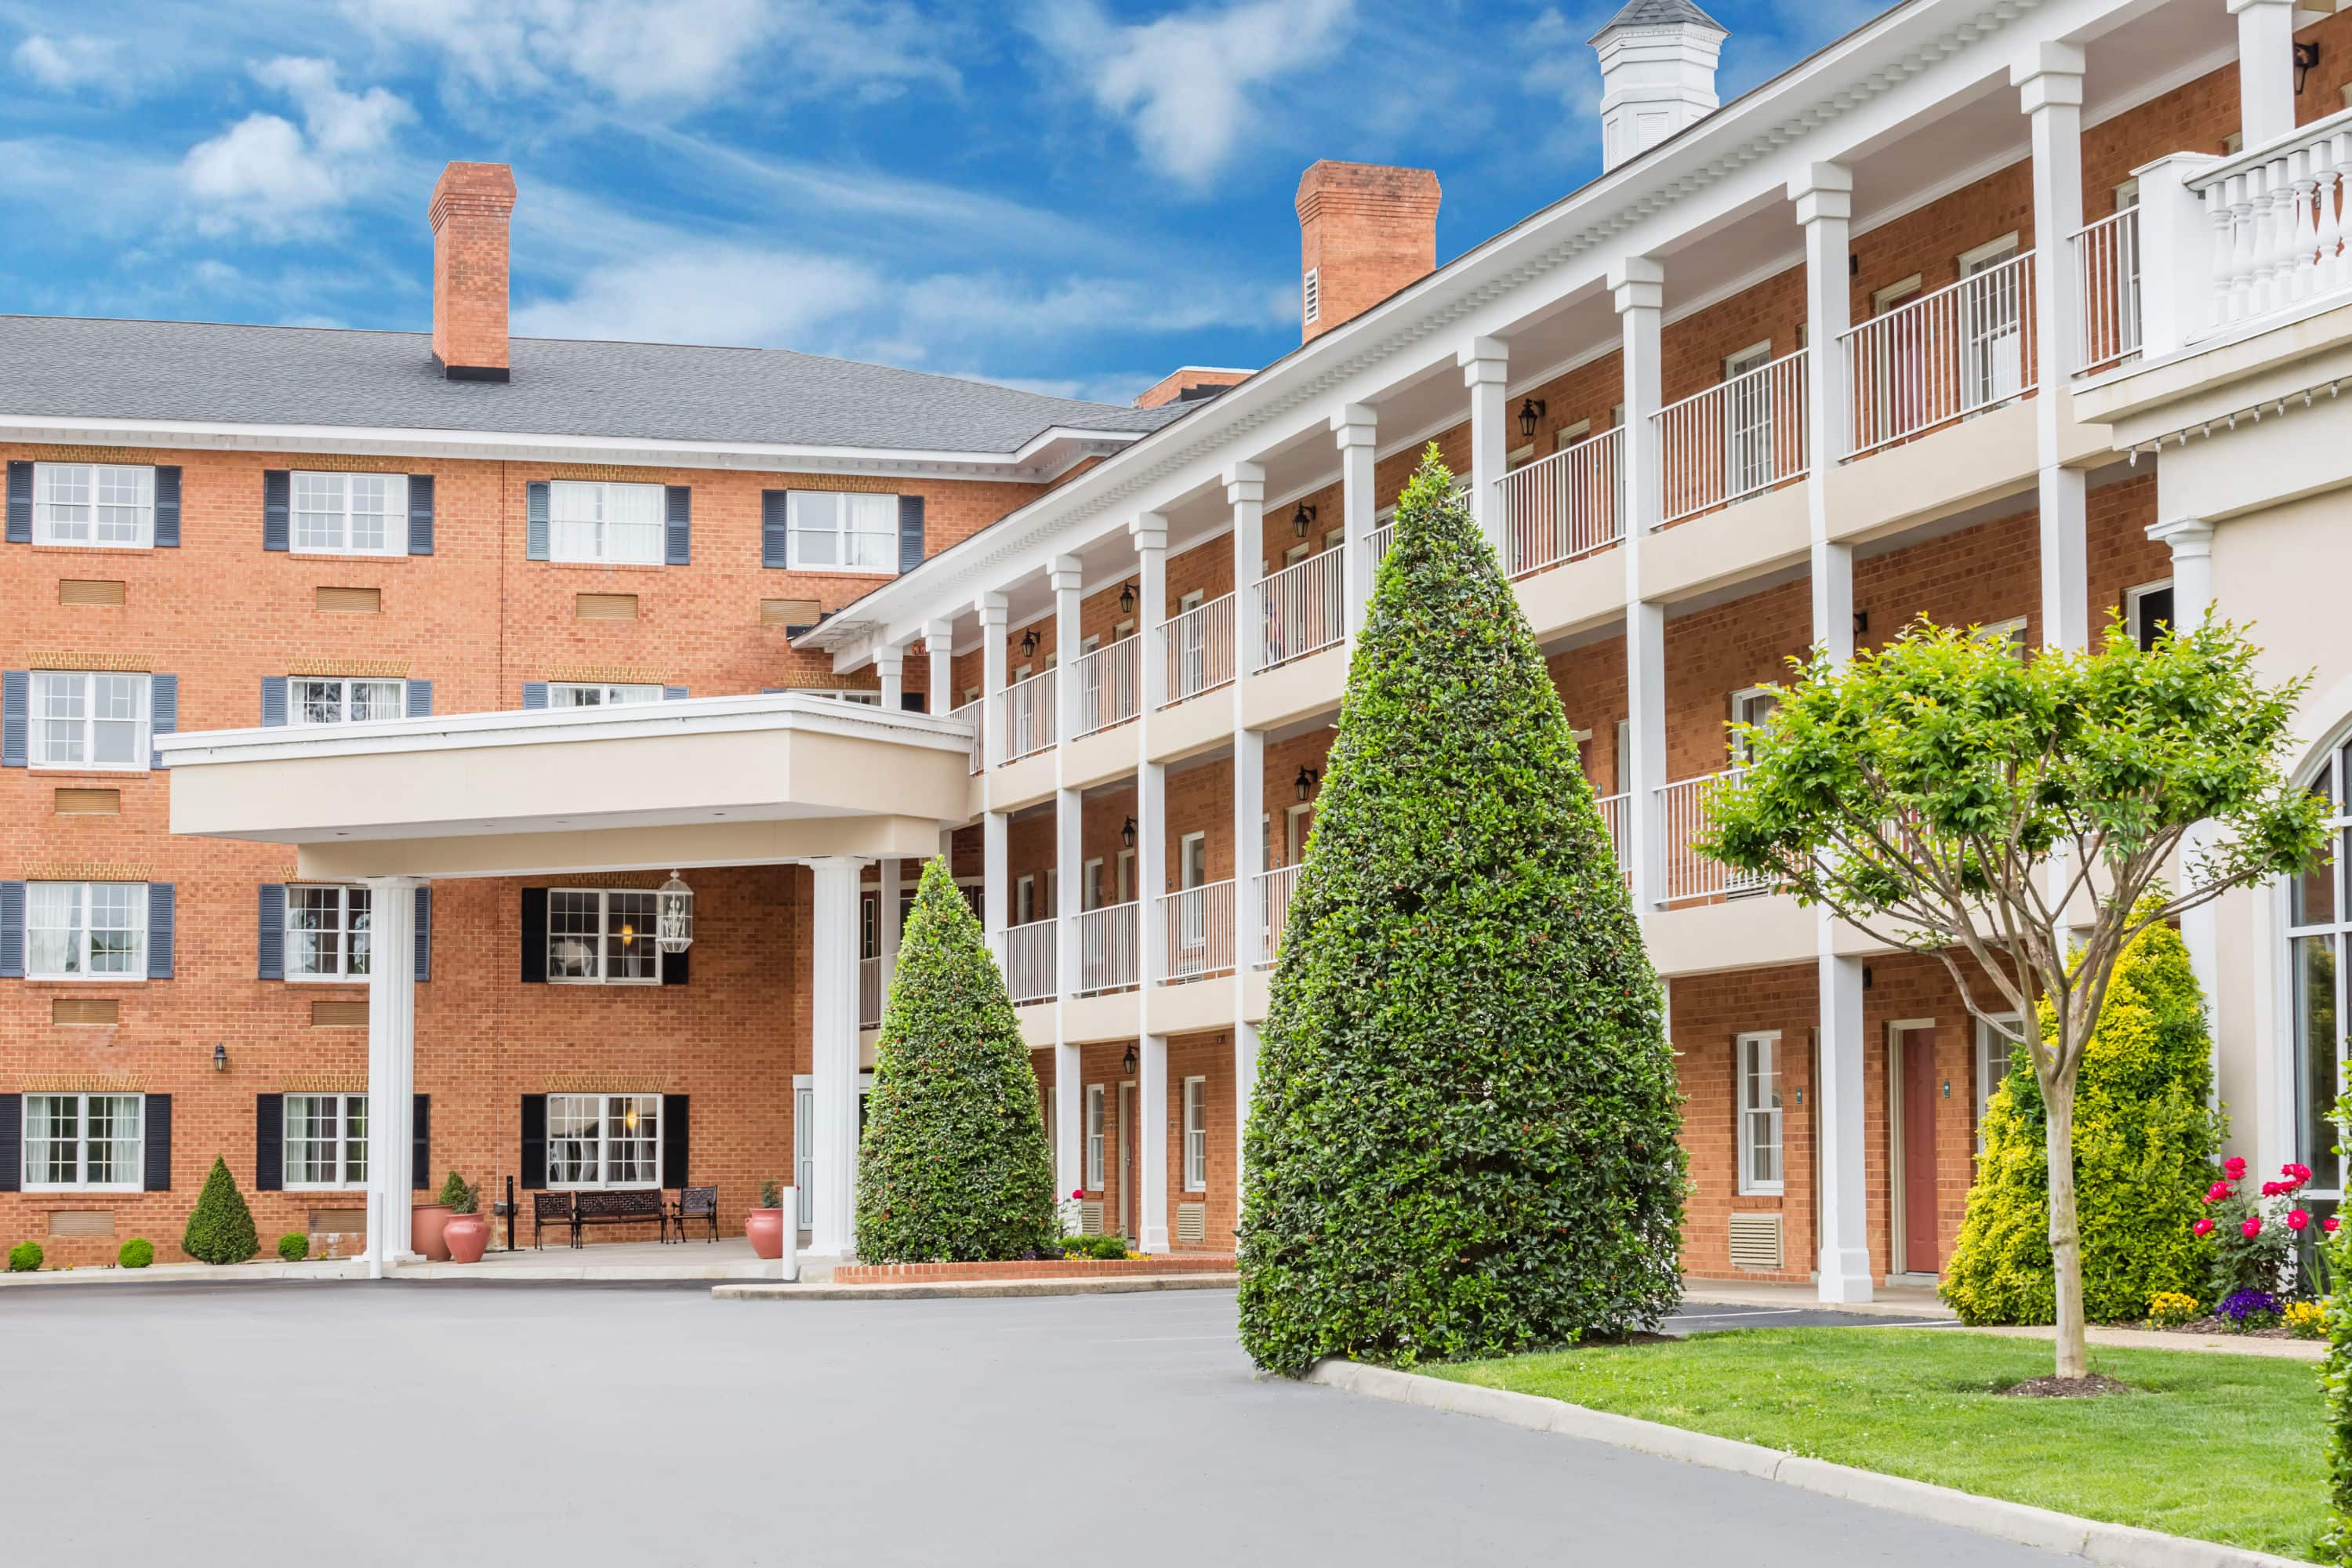 Captivating Days Inn By Wyndham Williamsburg Historic Area | Williamsburg Hotels, VA  23185 2931 Pictures Gallery